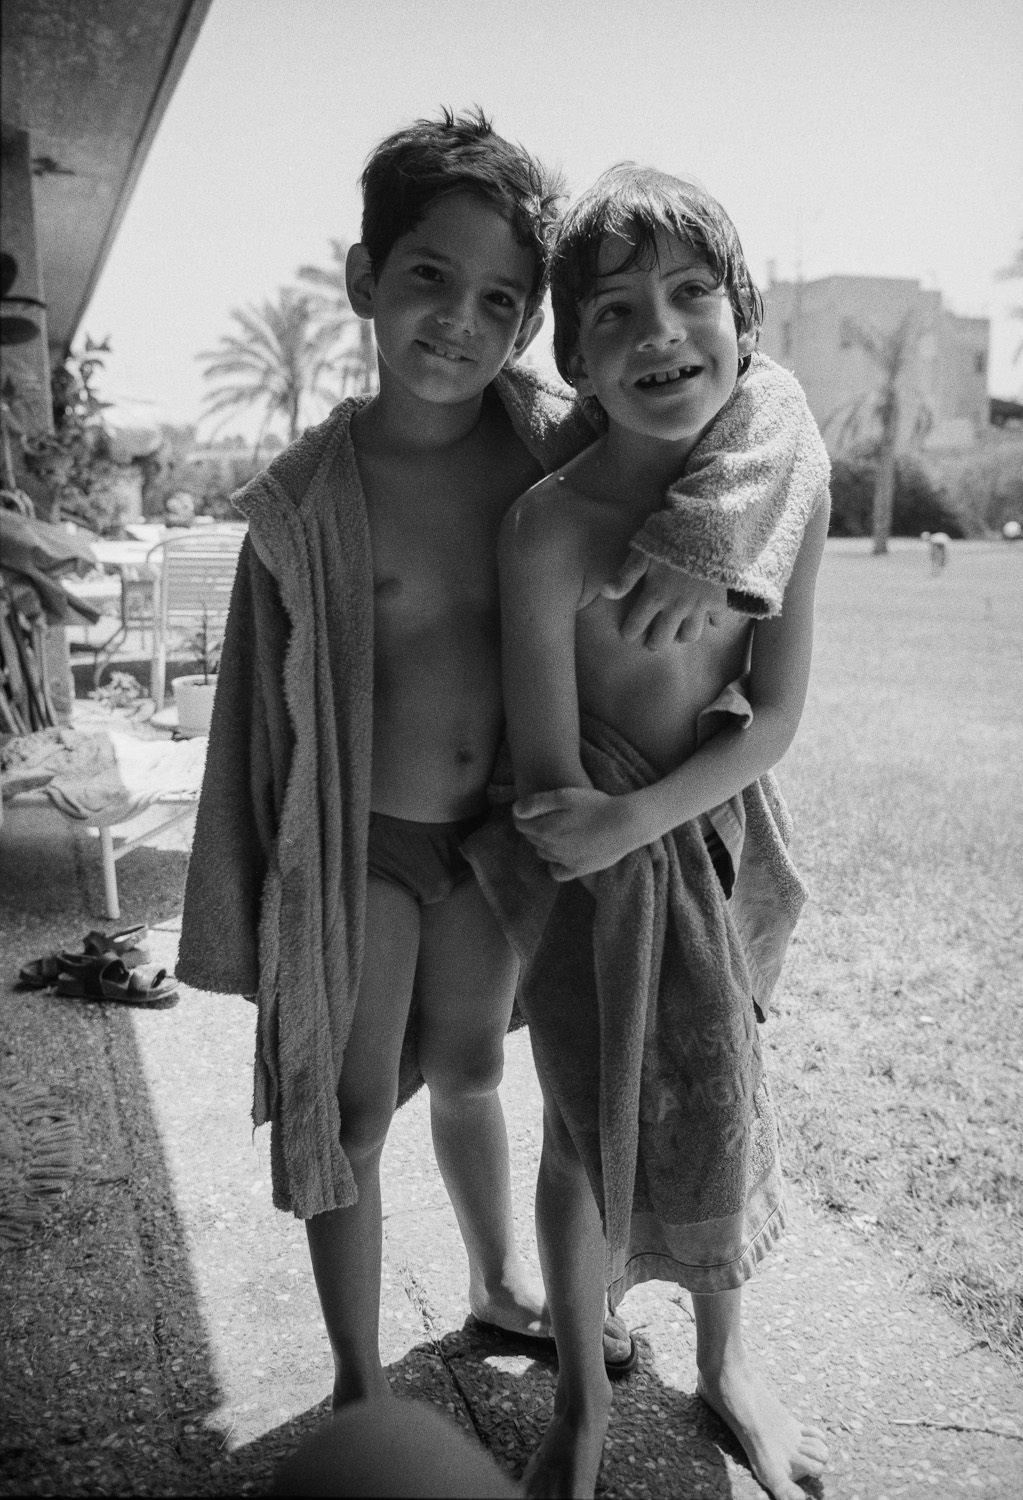 Tomer and Guy, Golden Beach - 1987